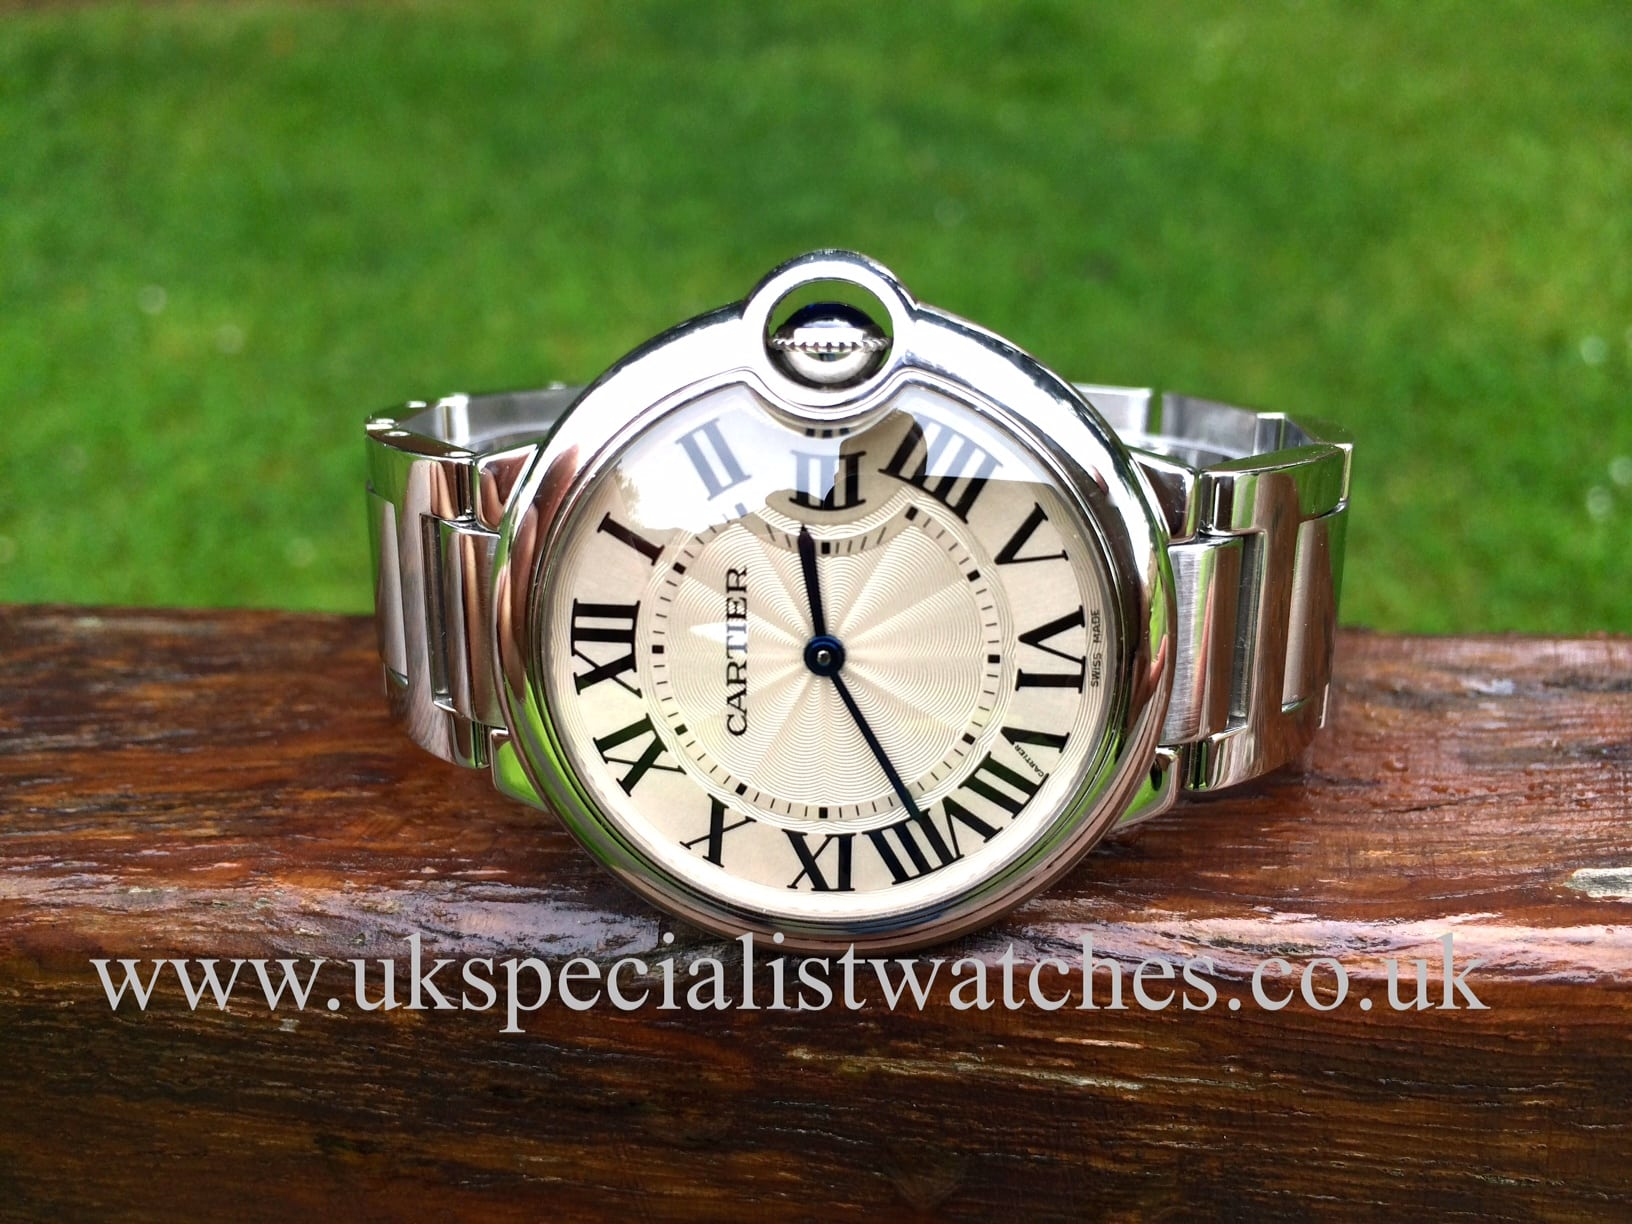 f599a3833a2 Recently Sold Watches – Page 30 – UK Specialist Watches